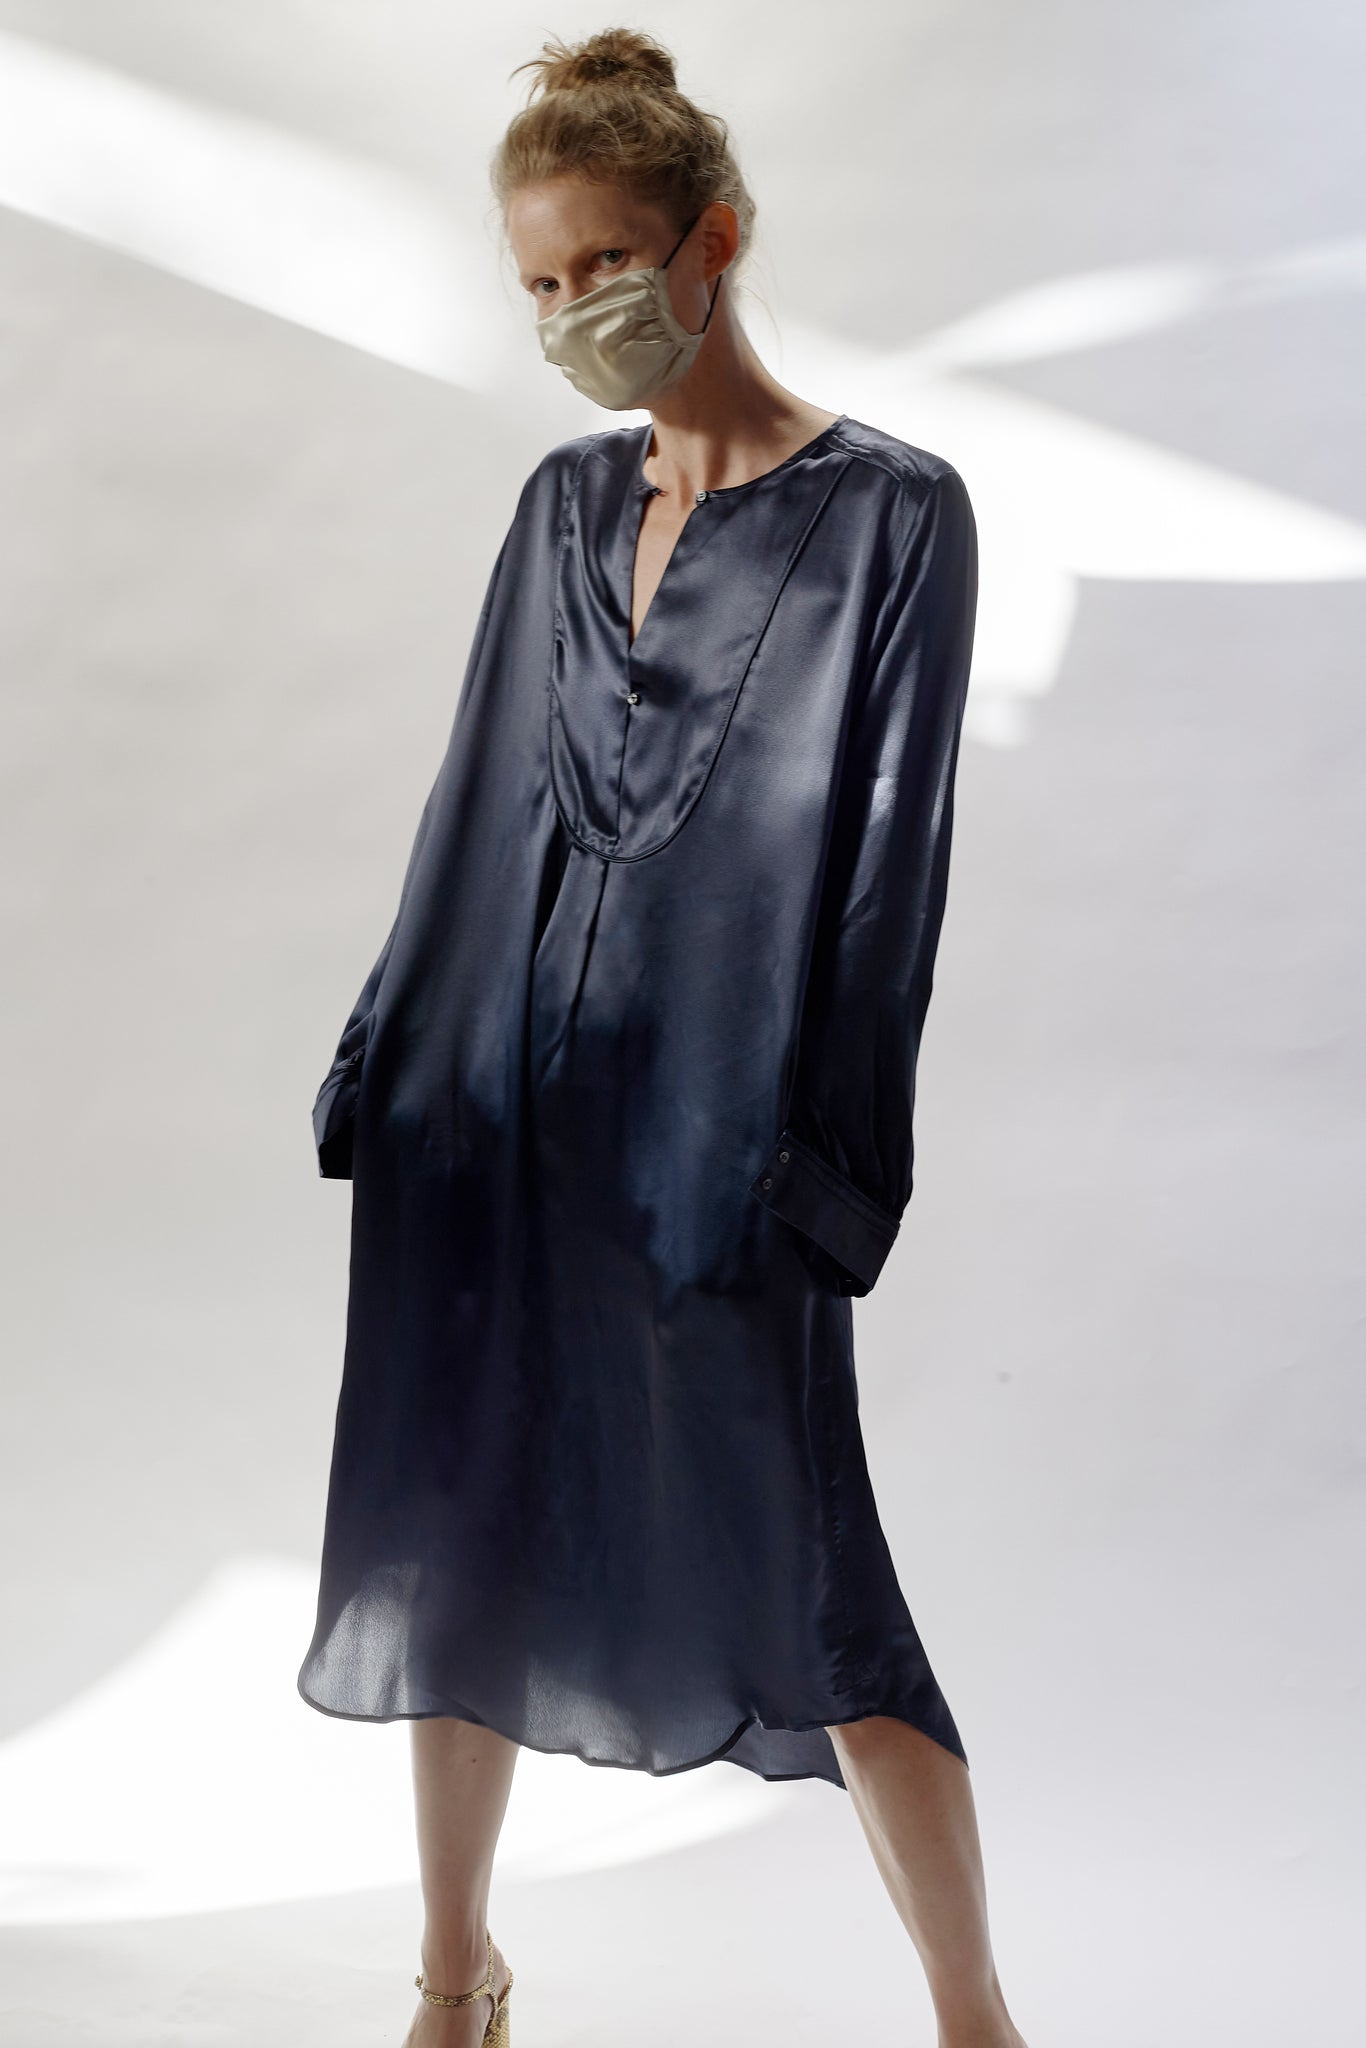 KES Modern Bib Dress - Full Moon